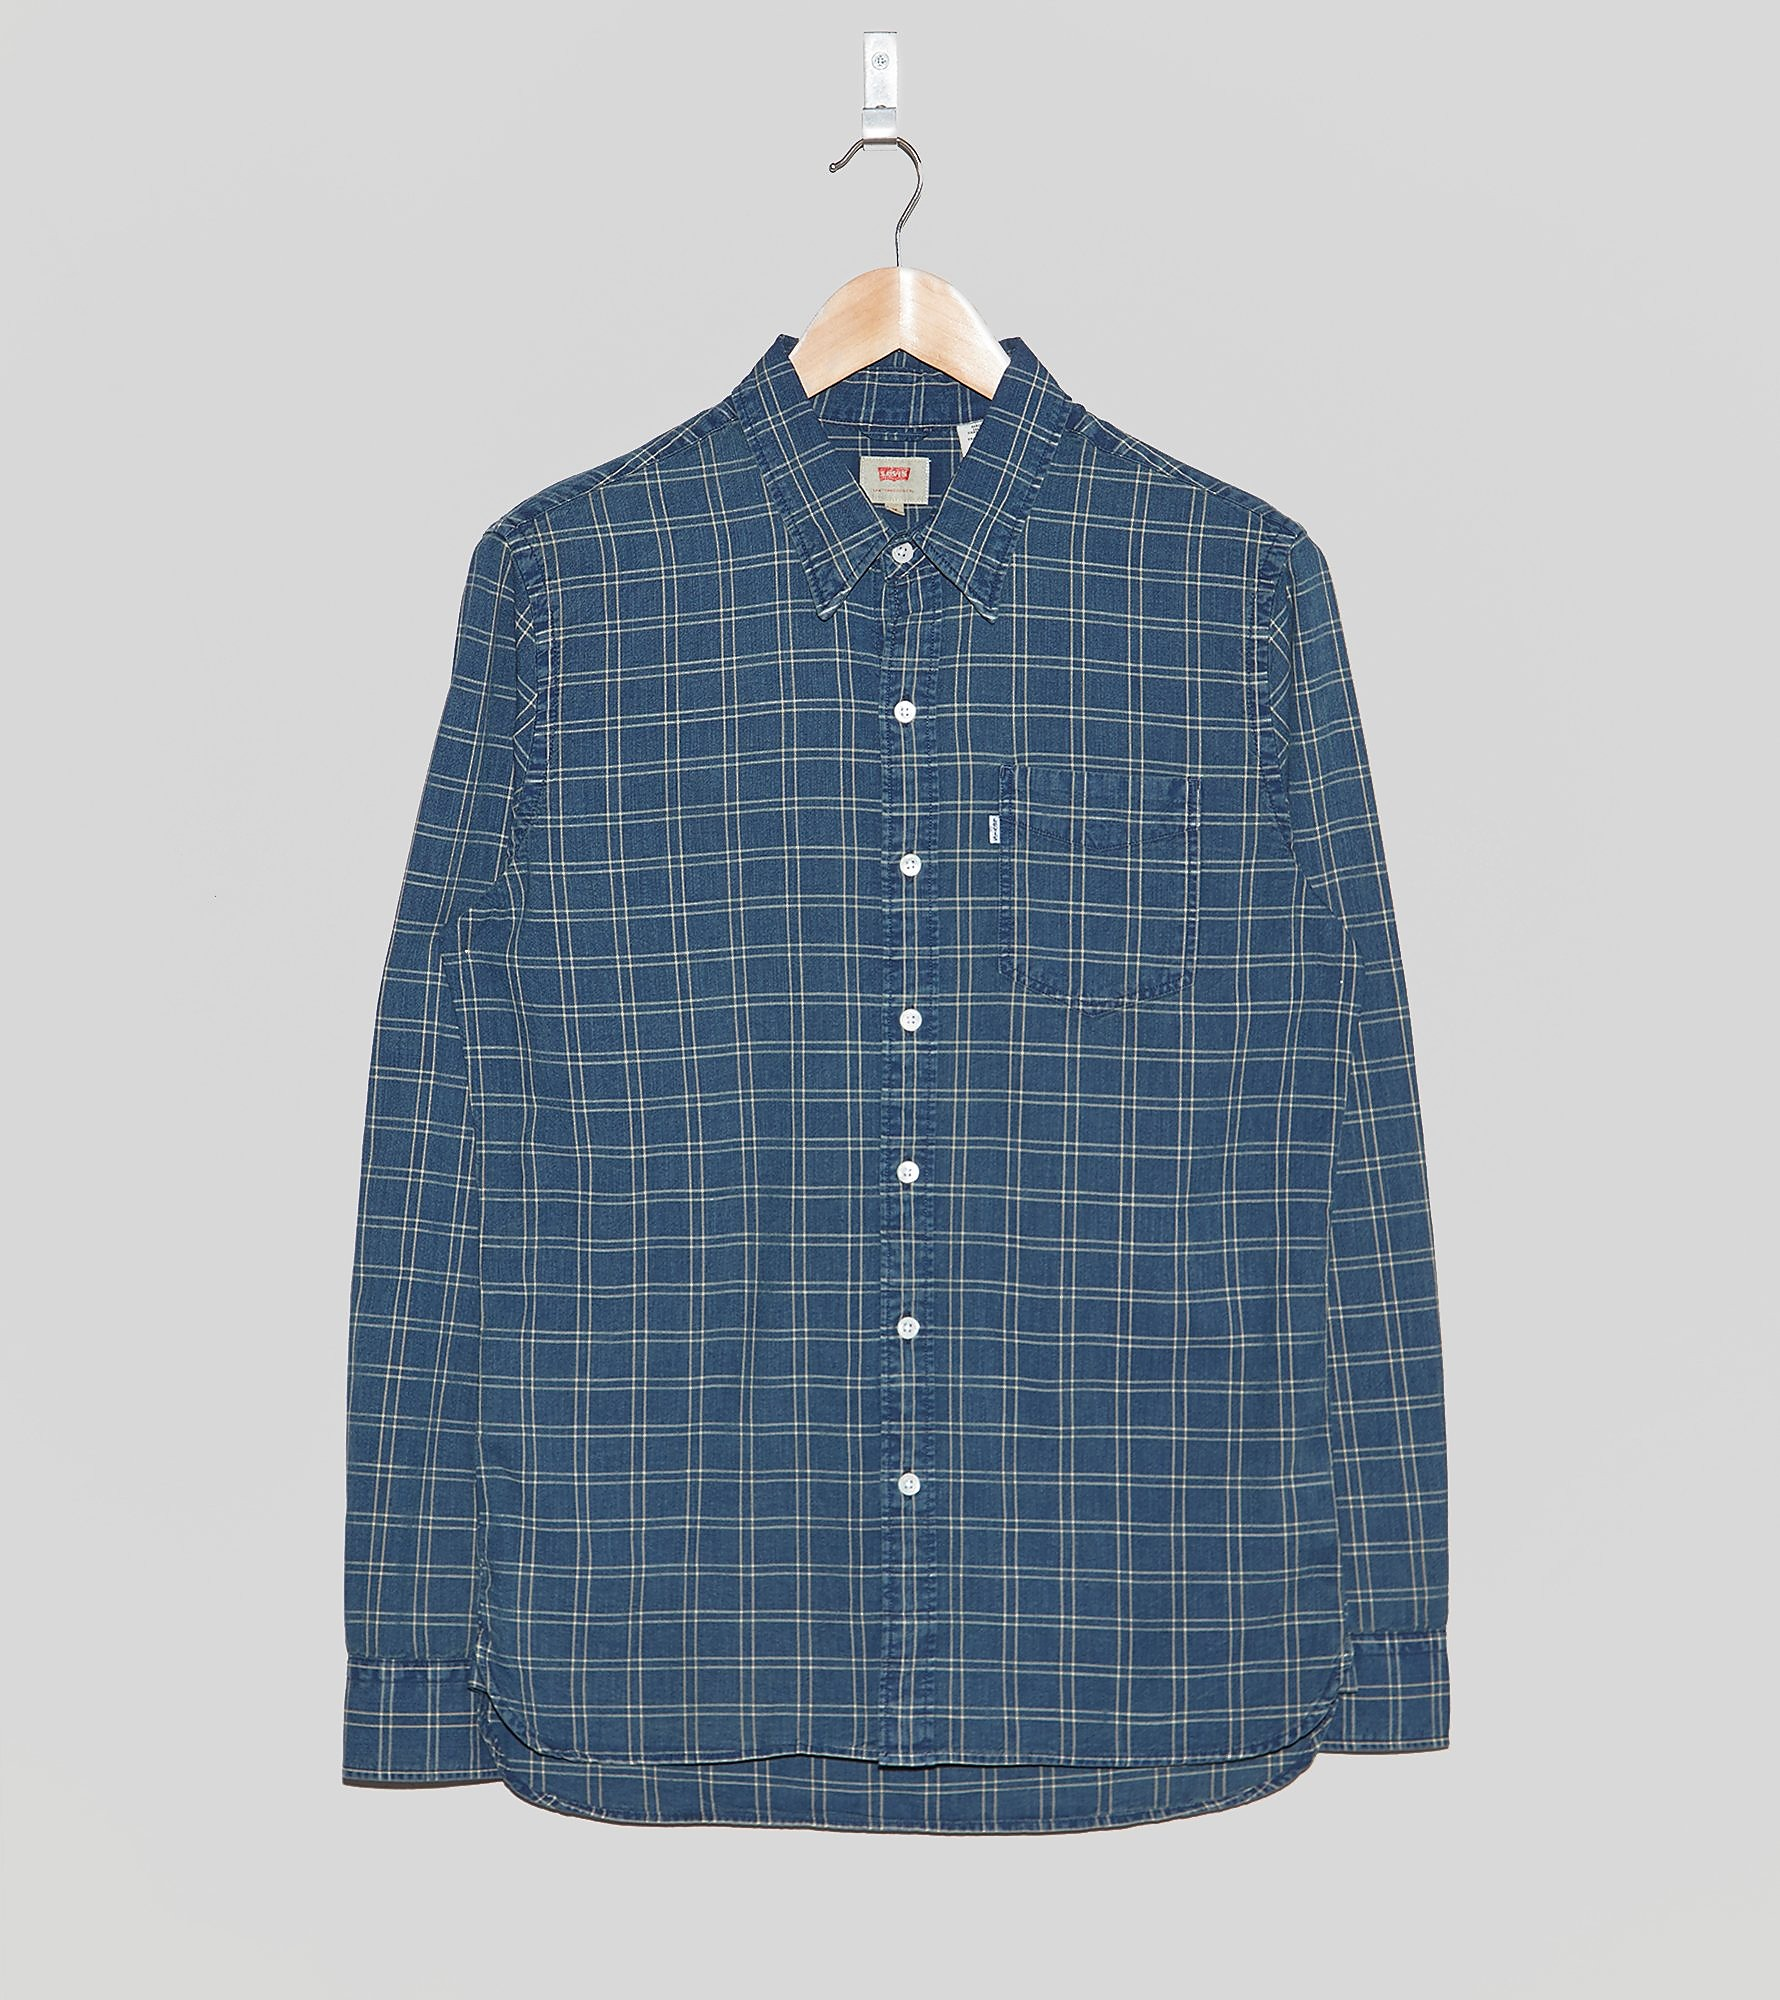 Levis Long-Sleeved Sunset Plaid Shirt